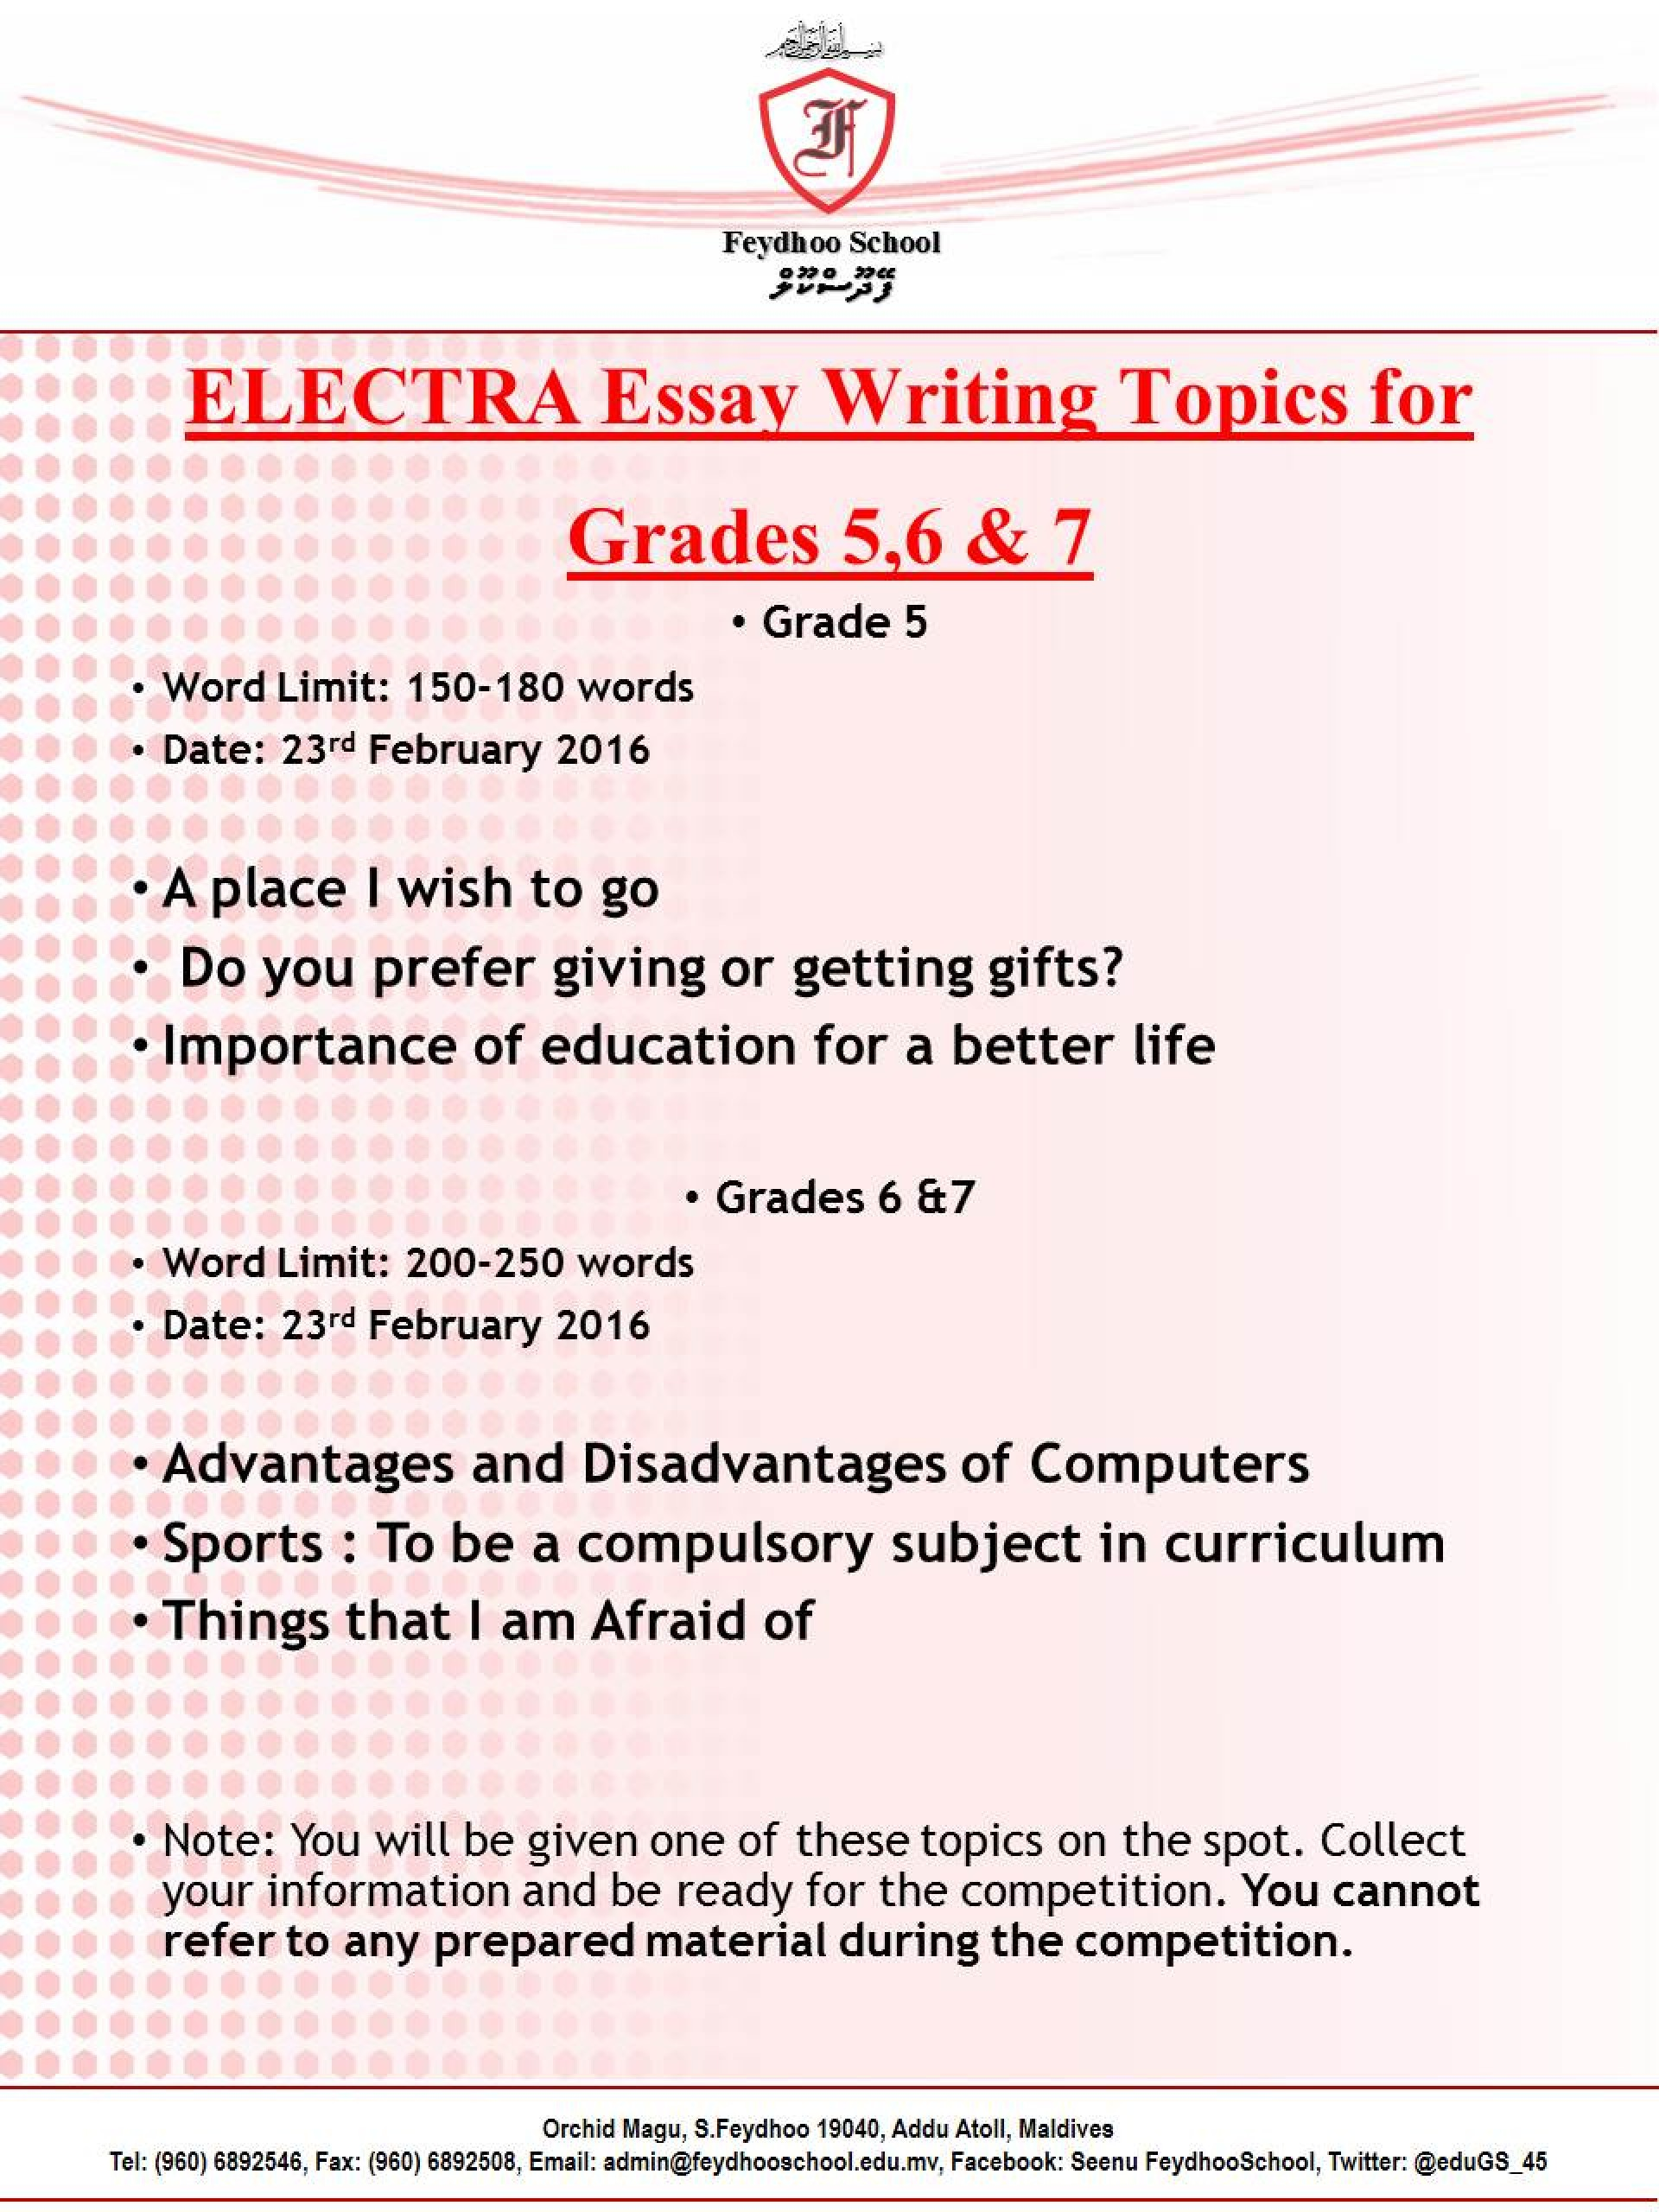 003 Essay Example Topics For Grade Marvelous 5 English Writing Tips 1920